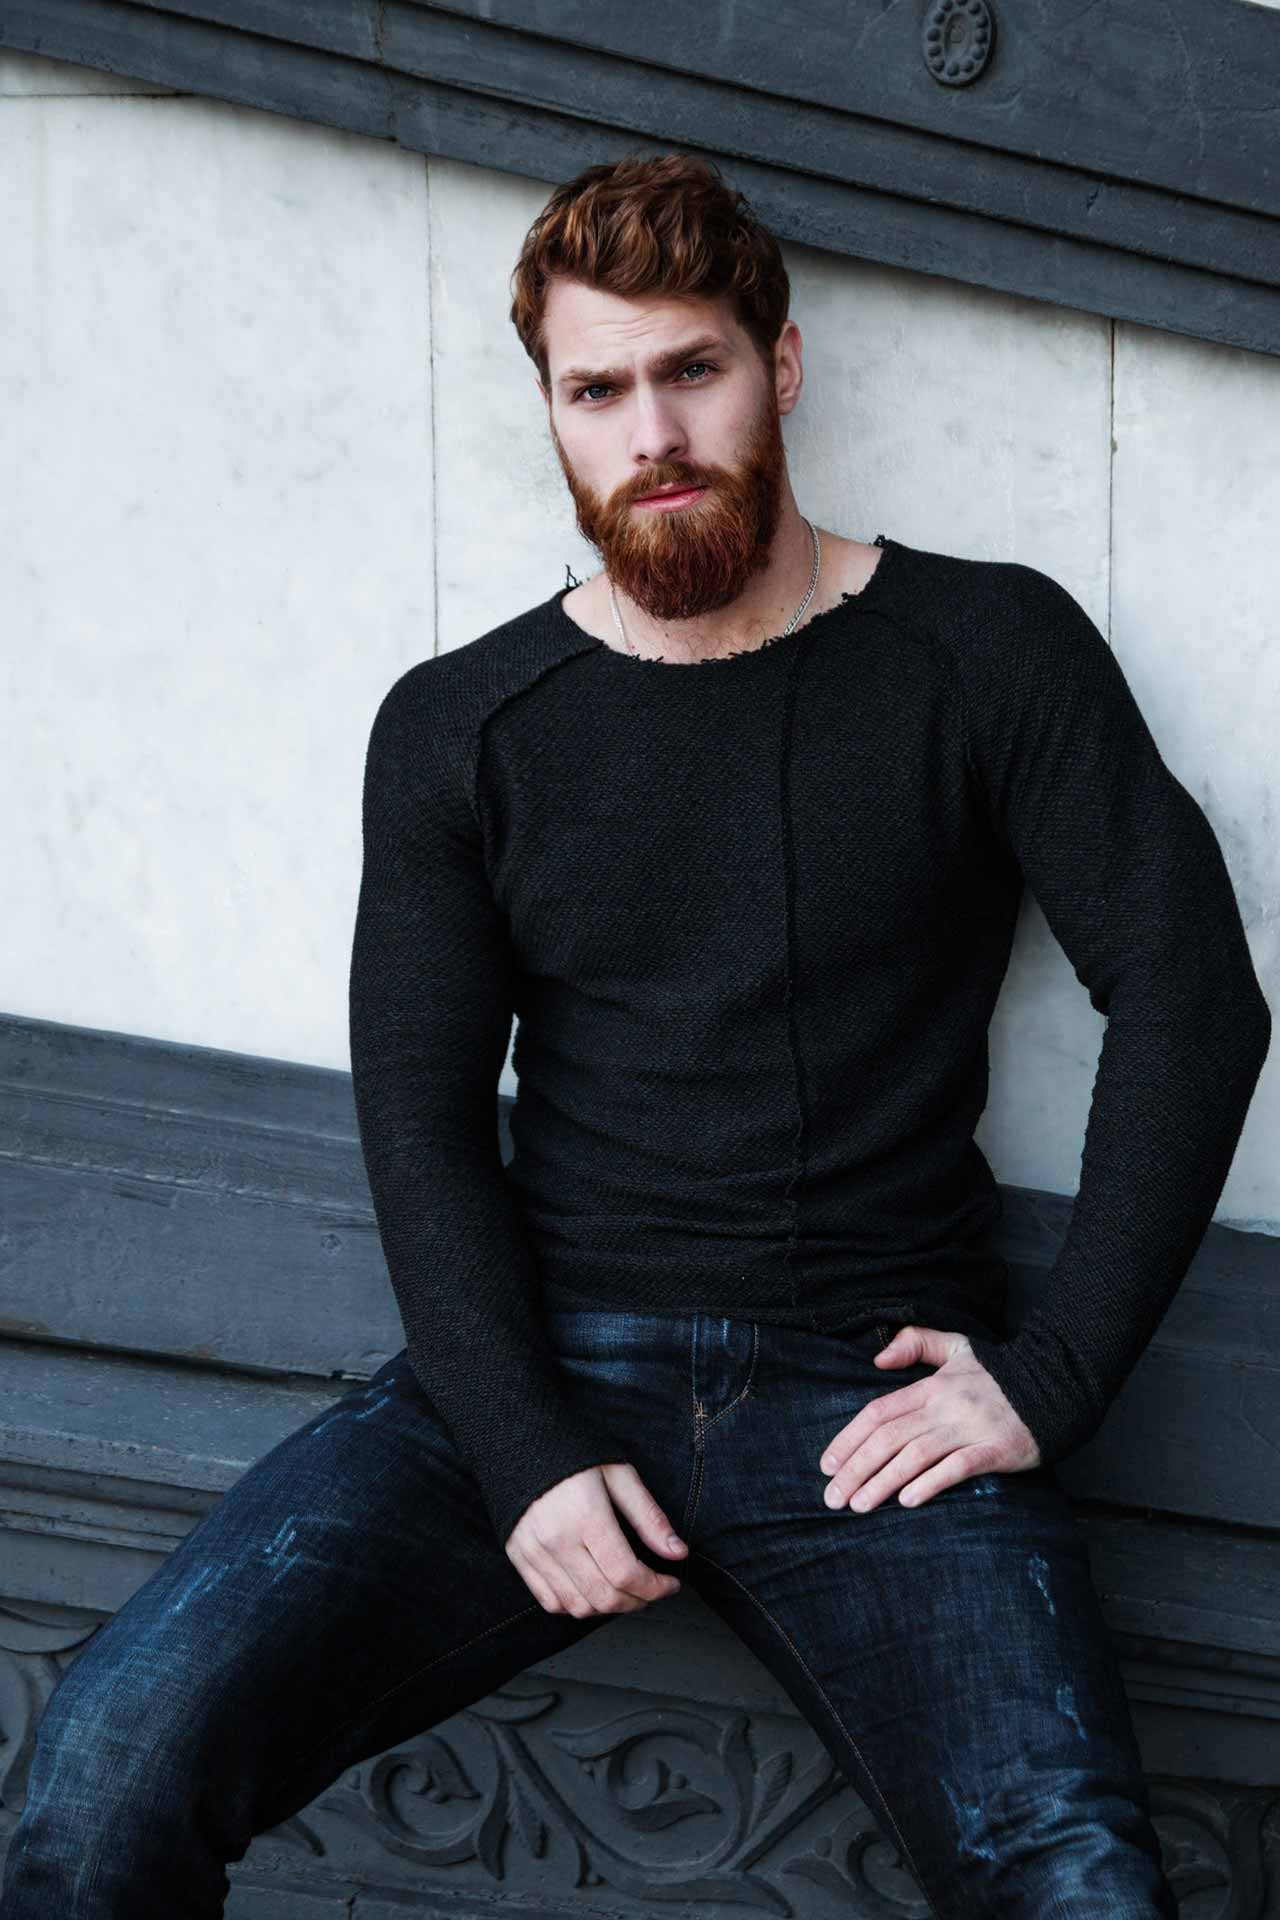 beard-casual-fashion-247903